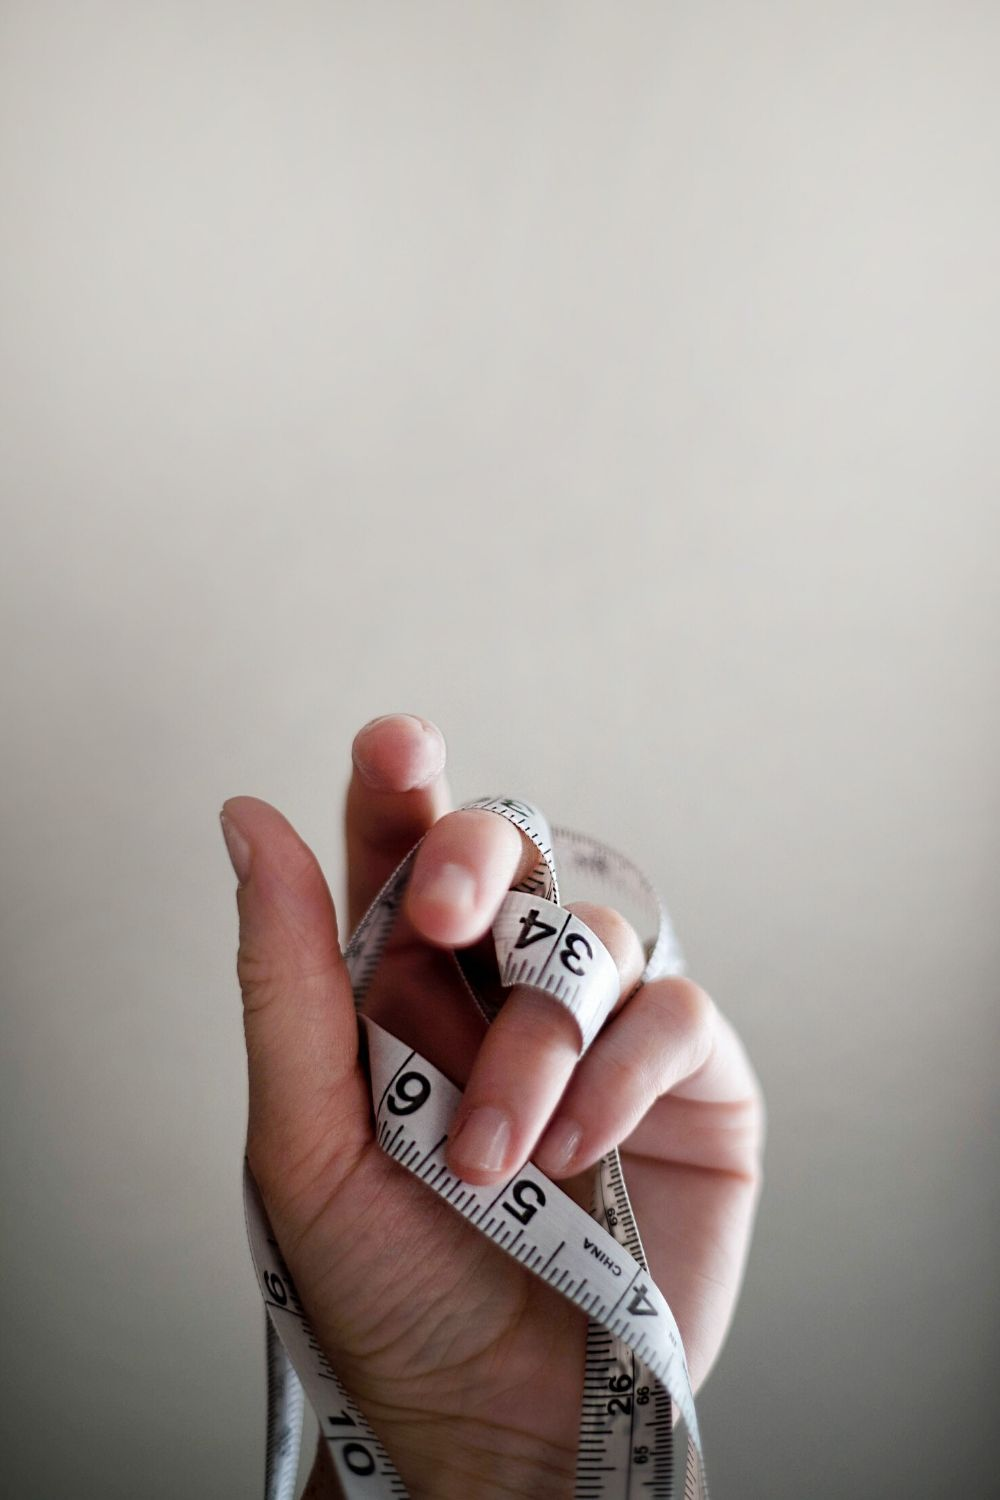 Measuring tape wrapped around hand